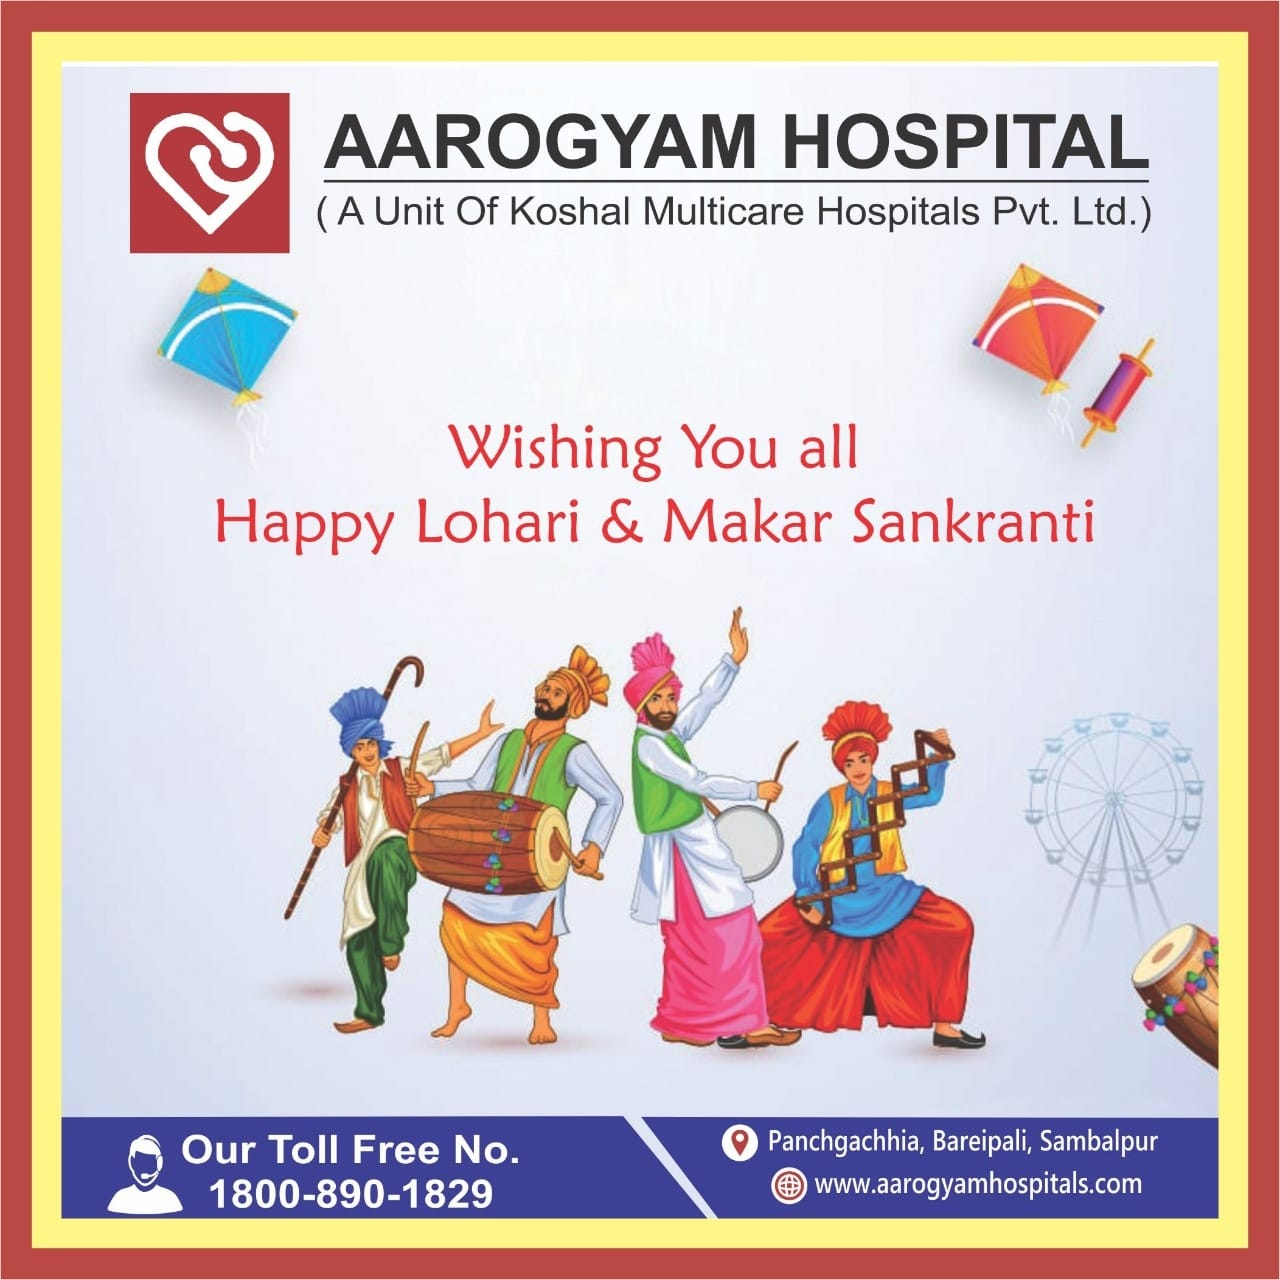 HAPPY LOHRI AND MAKAR SANKRANTI TO ALL OF YOU